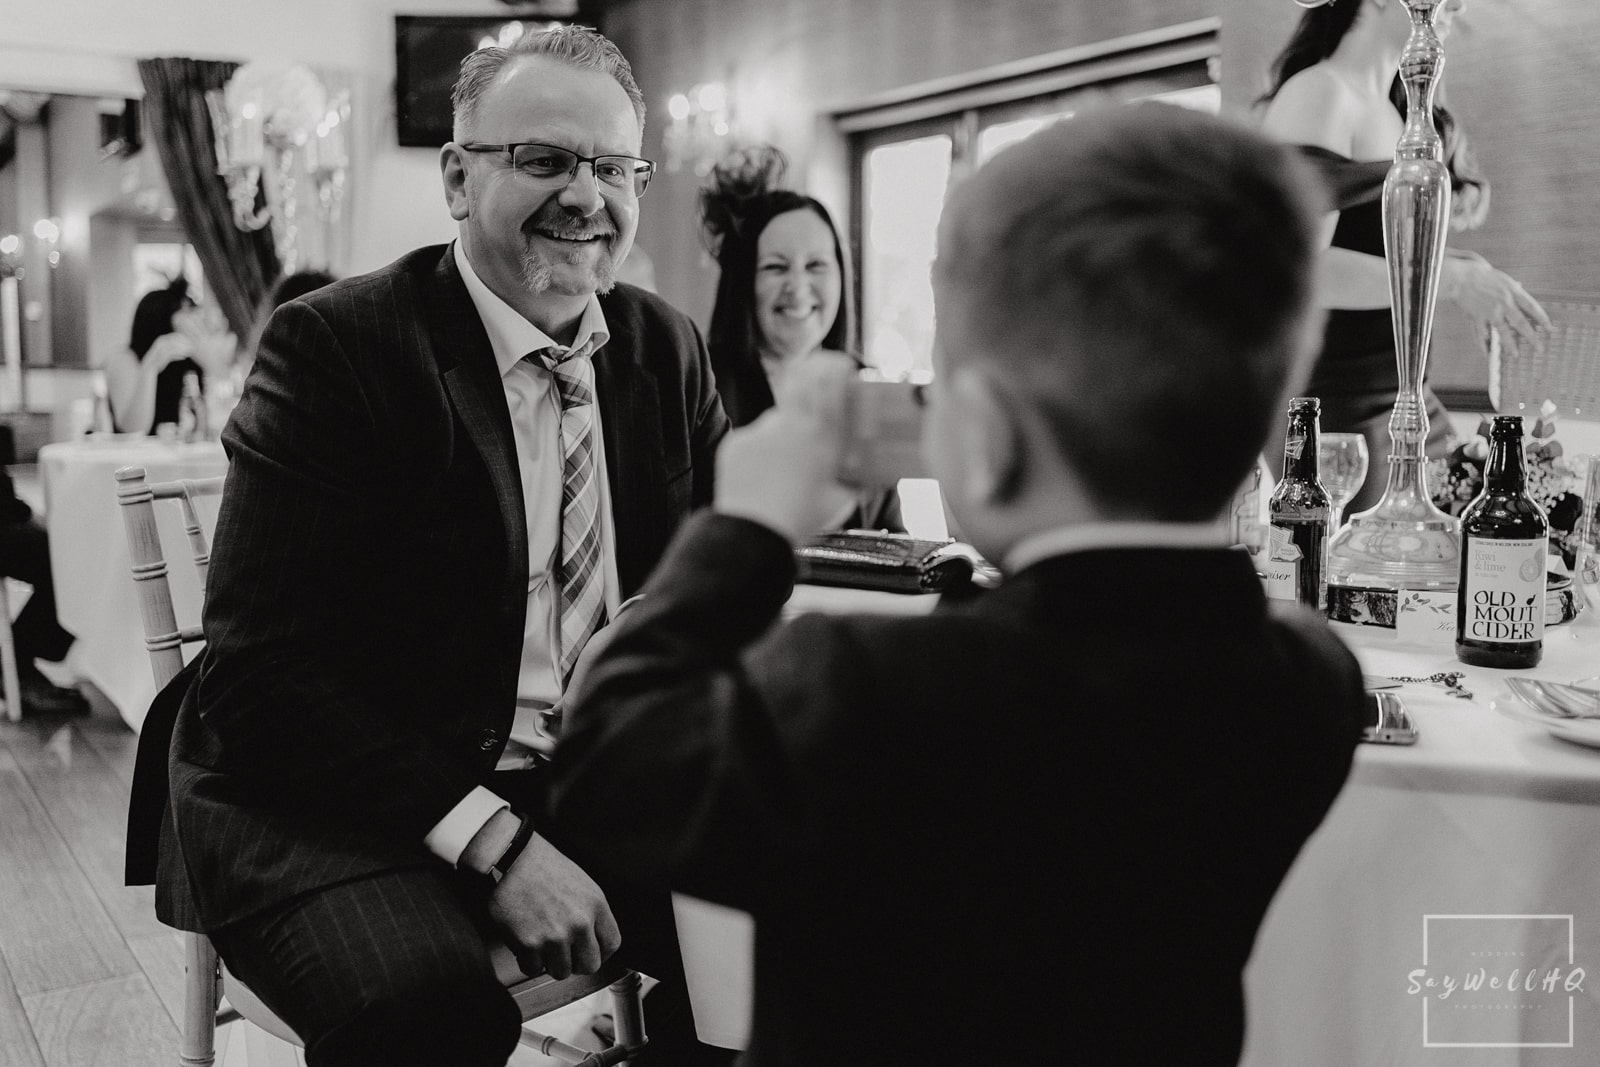 Goosedale Wedding Photography + Goosedale Wedding Photographer + wedding guests chat and enjoy the wedding breakfast at a Goosedale wedding in Nottingham